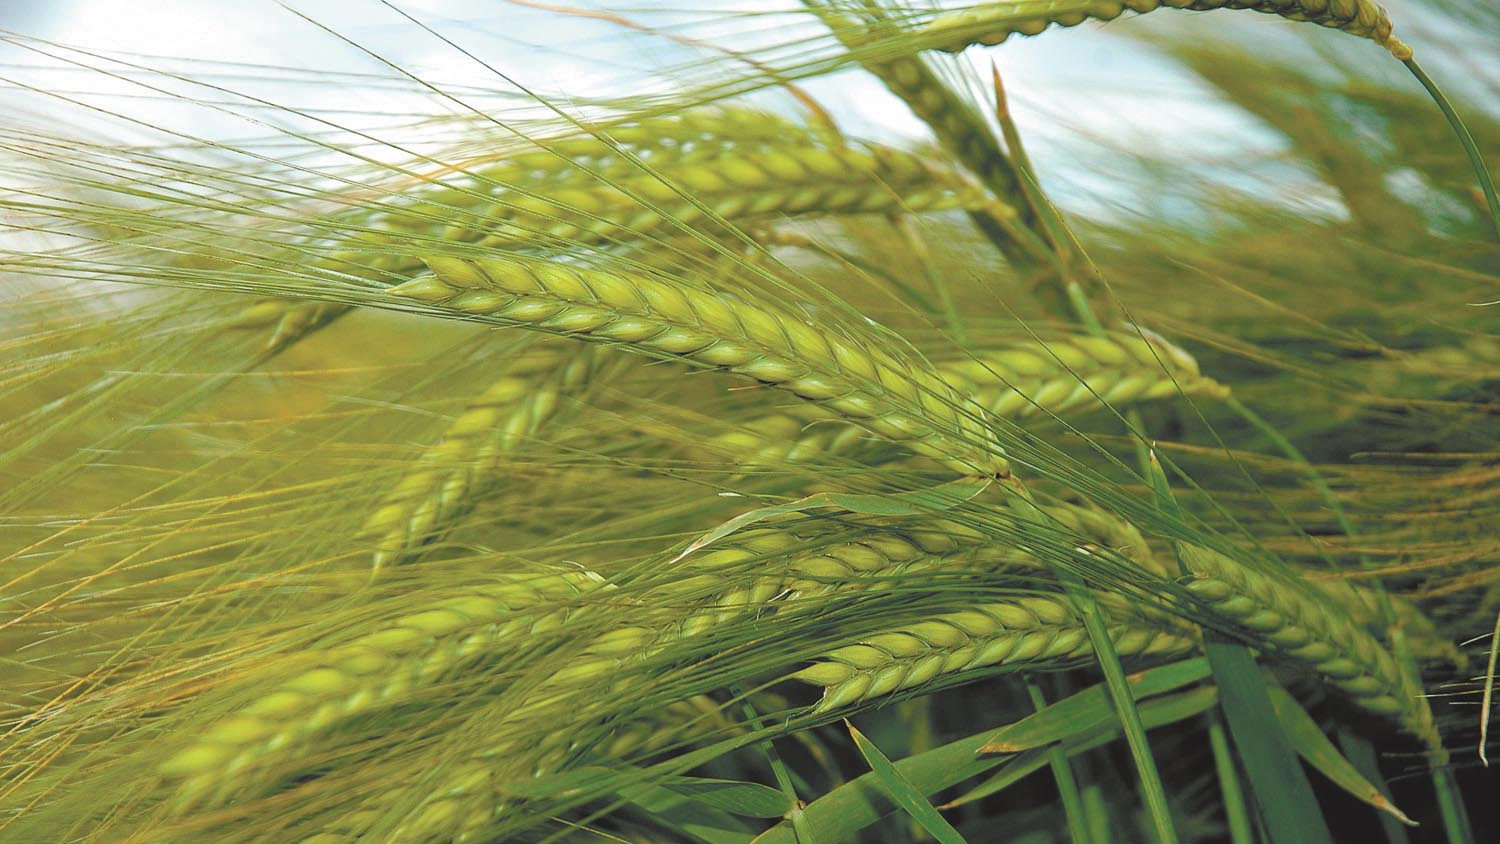 Early RL results show above average winter barley yields